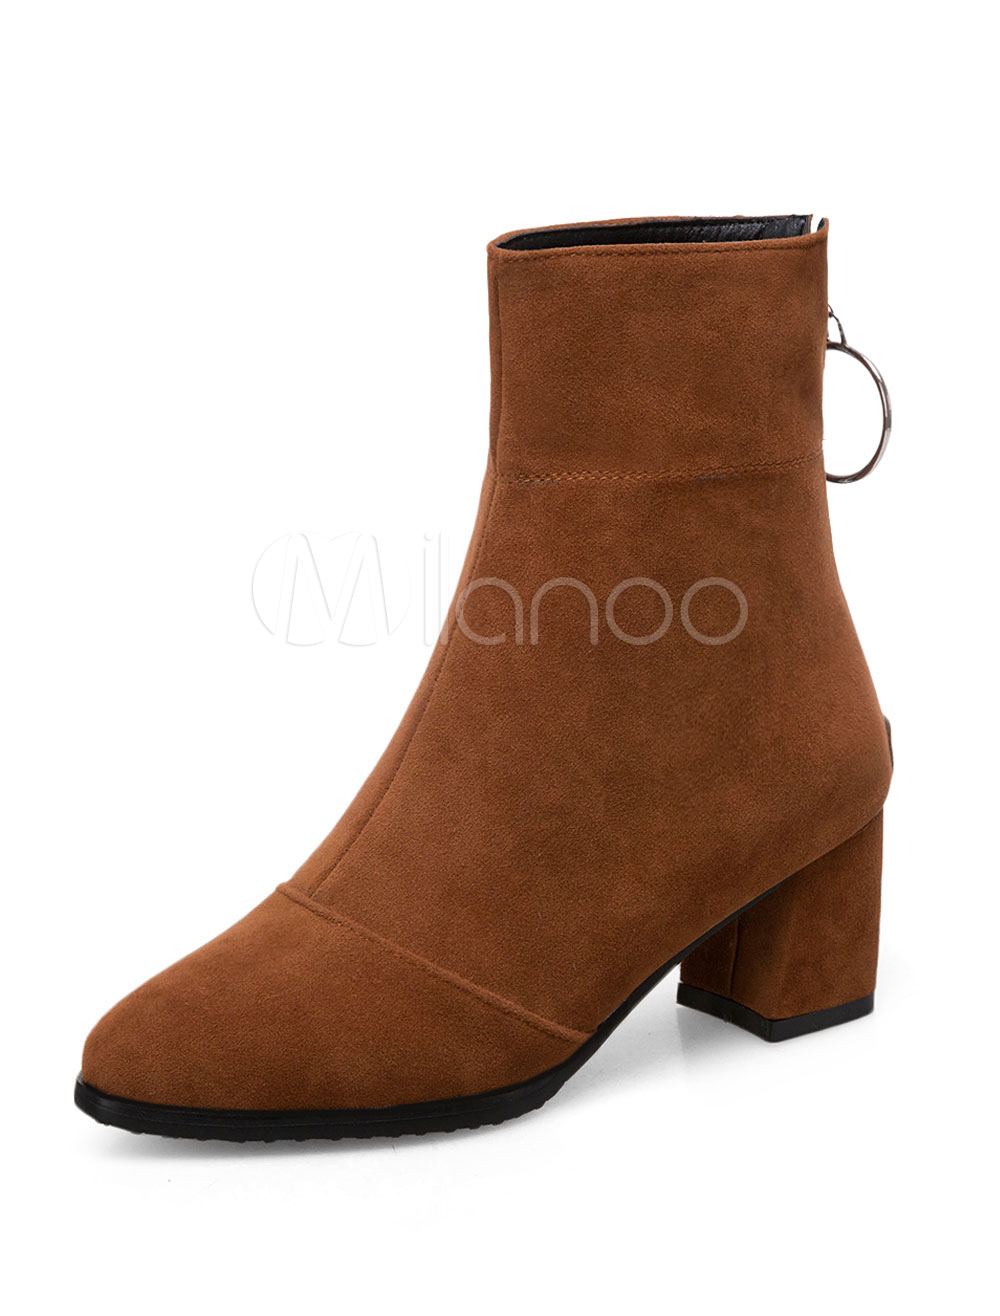 Woemn Corduroy Front Zipper Ankle Boots Block Heel Ladies Pointy Toe Party Shoes